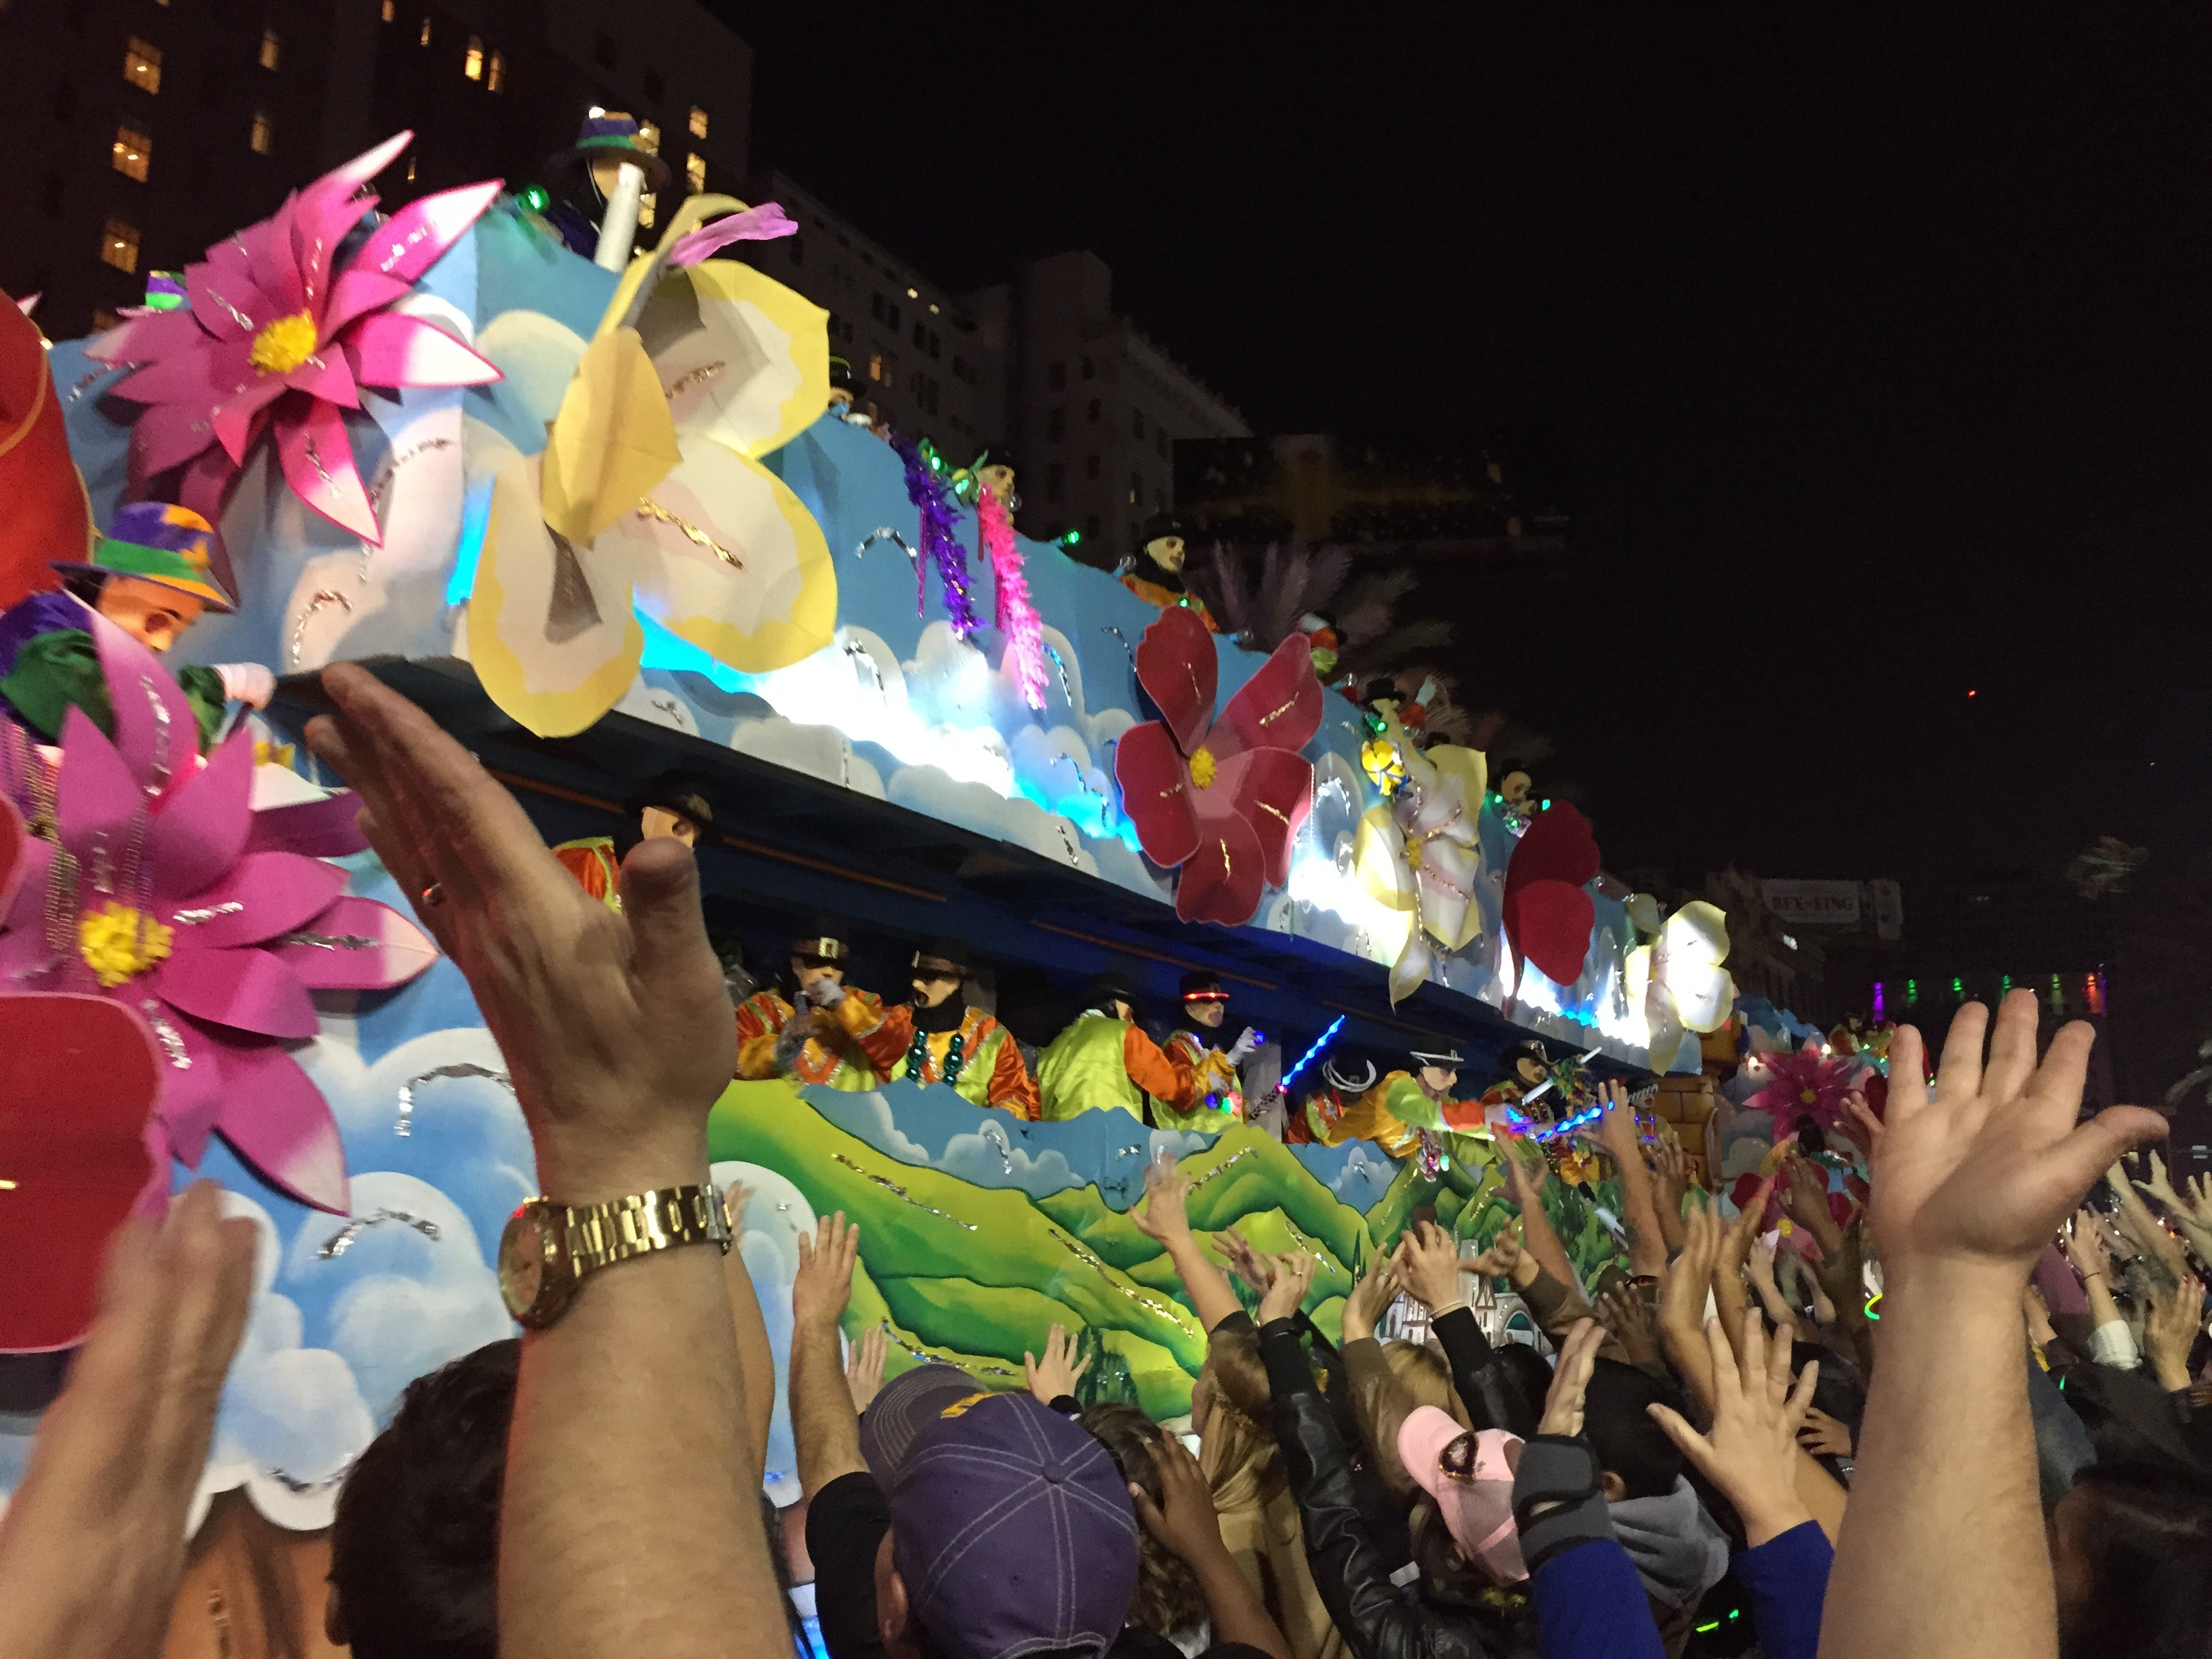 bacchus parade, canal street, mardis gras, new orleans, lousiana